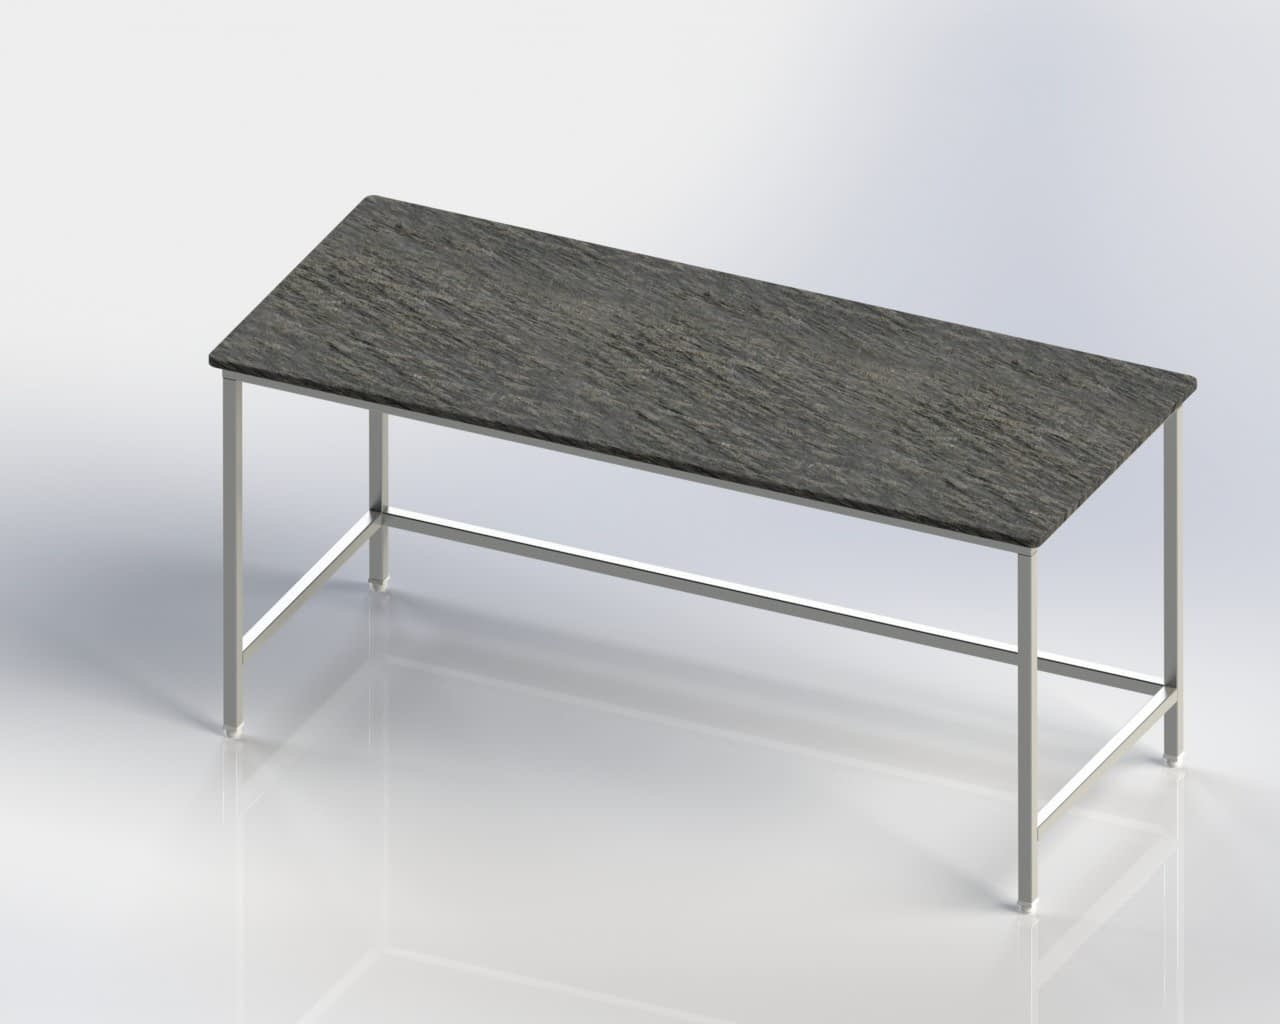 Marble Top Chapati Rolling Table